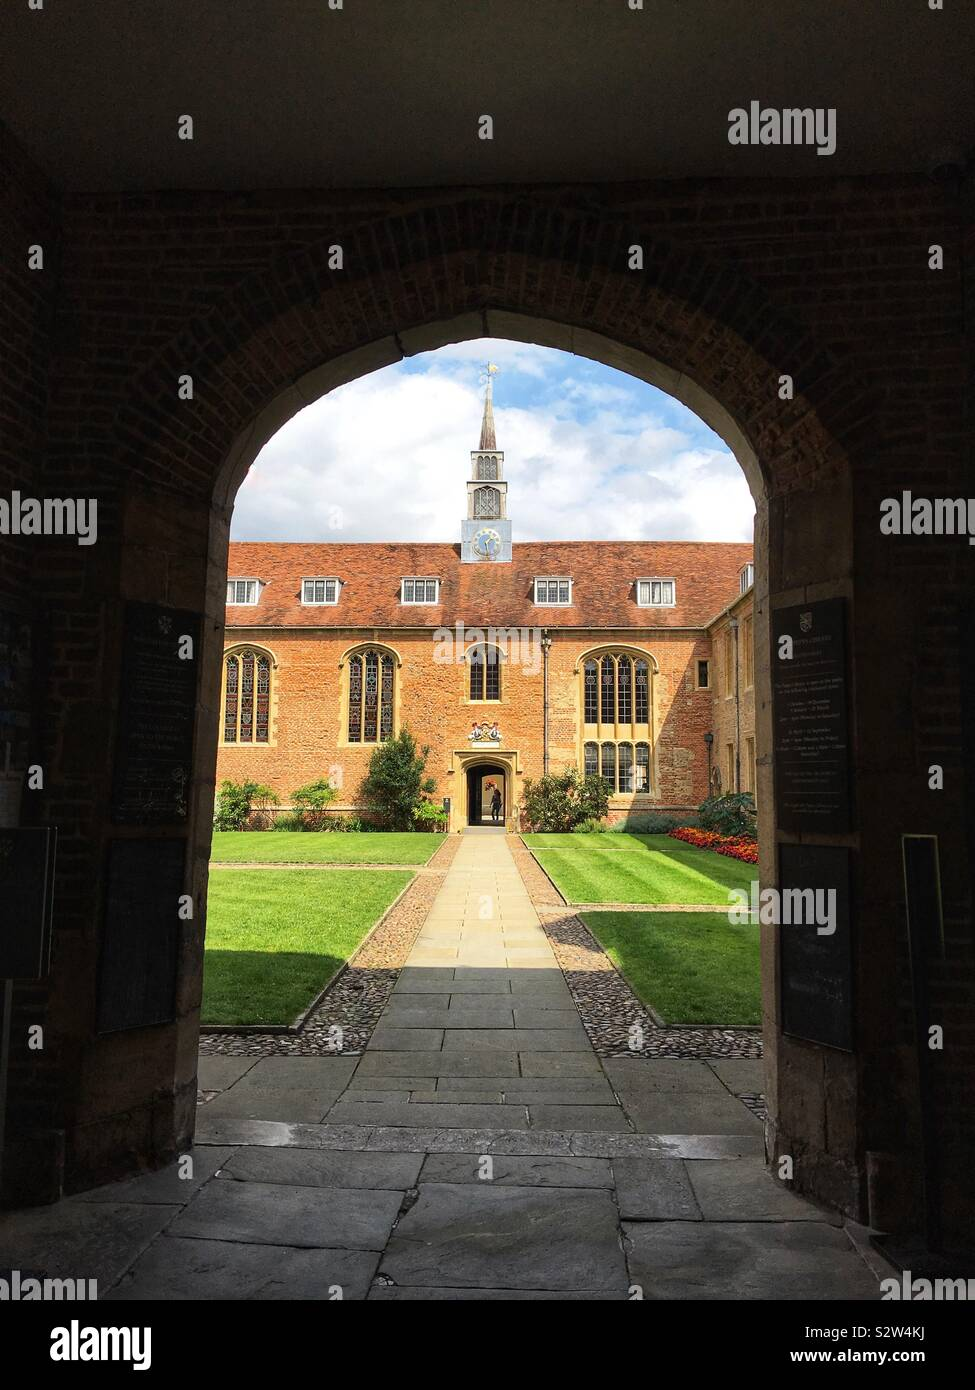 magdalene-college-cambridge-england-uk-S